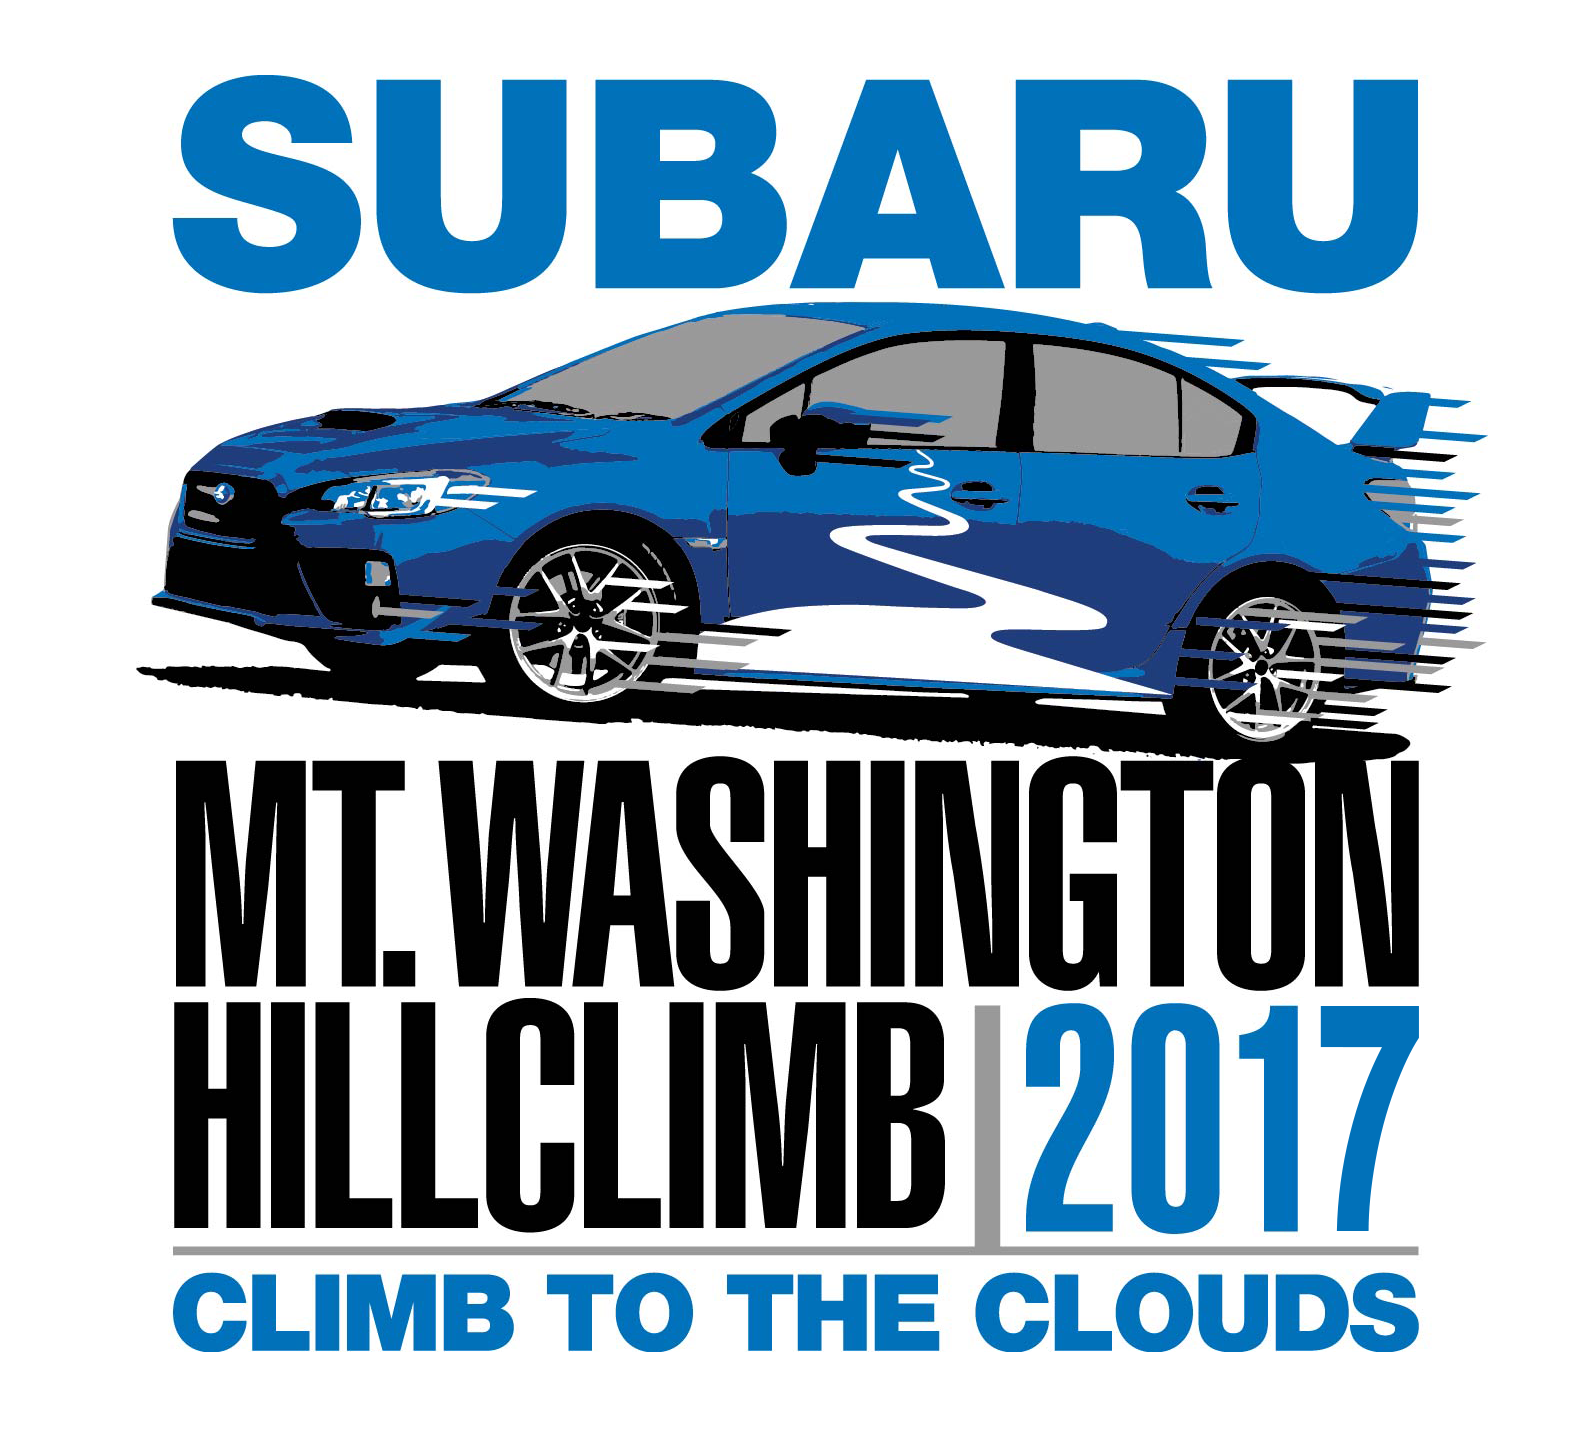 2017 Mount Washington Hillclimb Auto Race logo